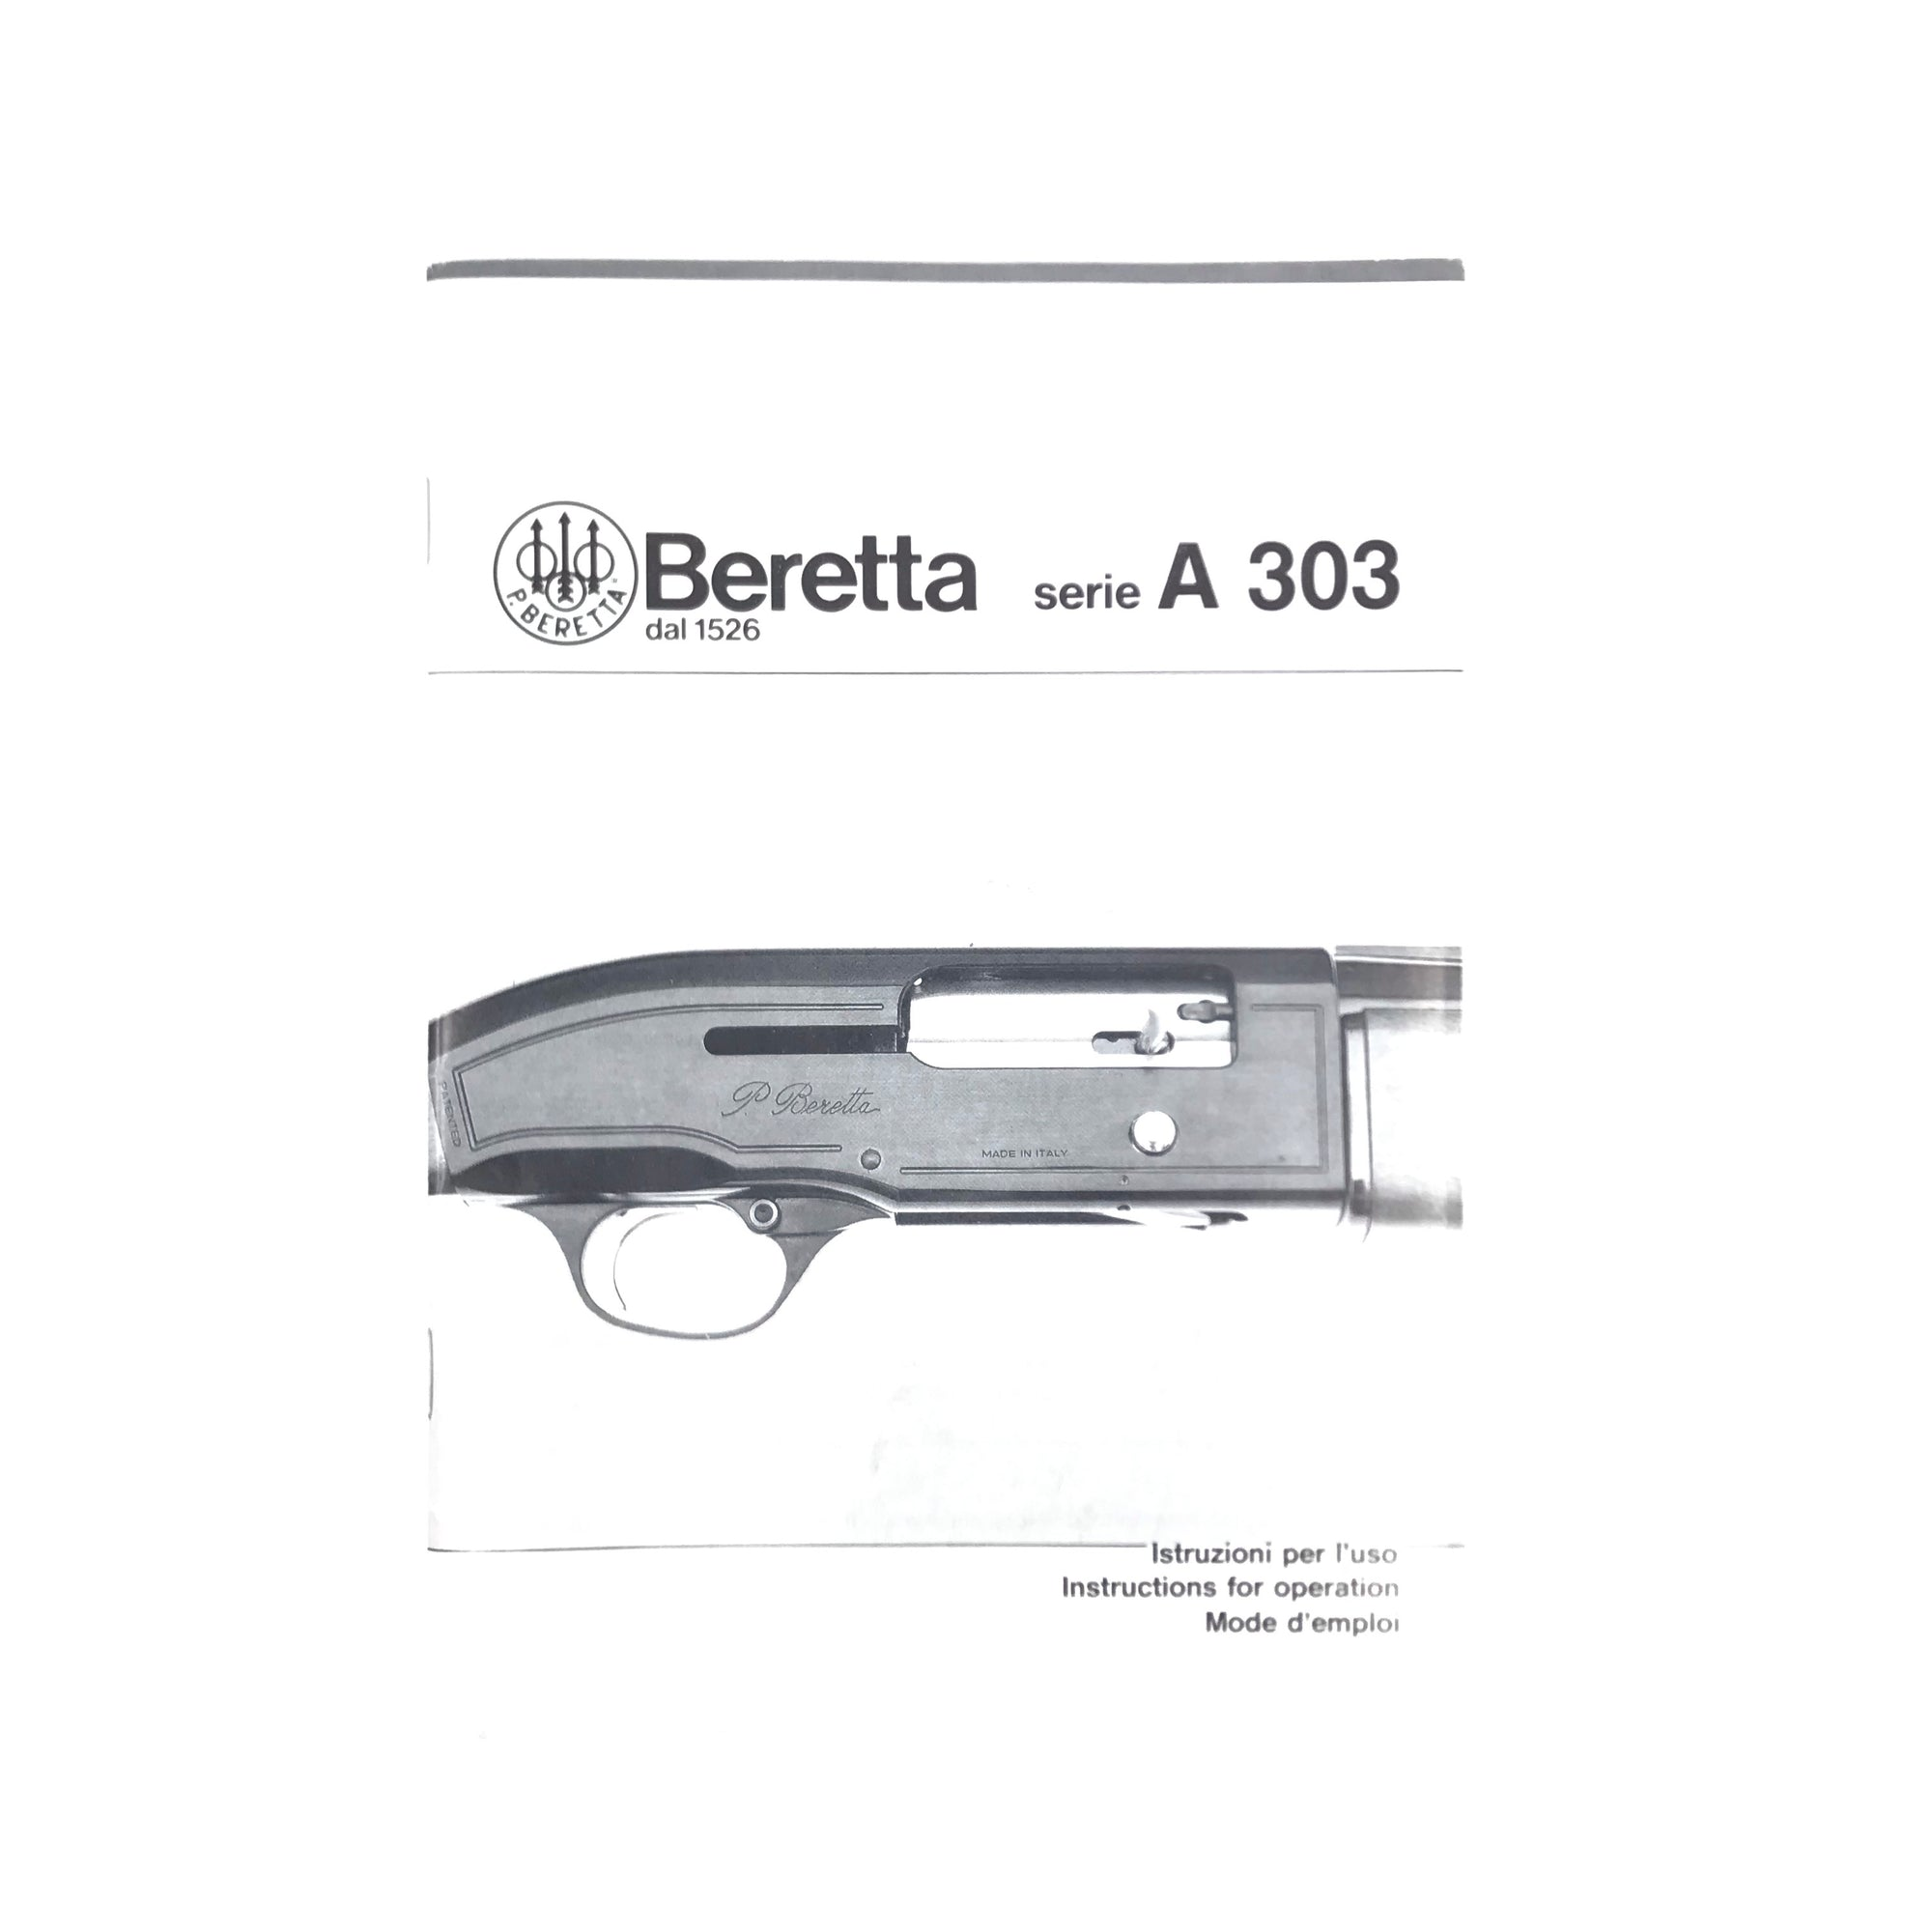 Beretta Series A 303 Instructions & Operation Manual